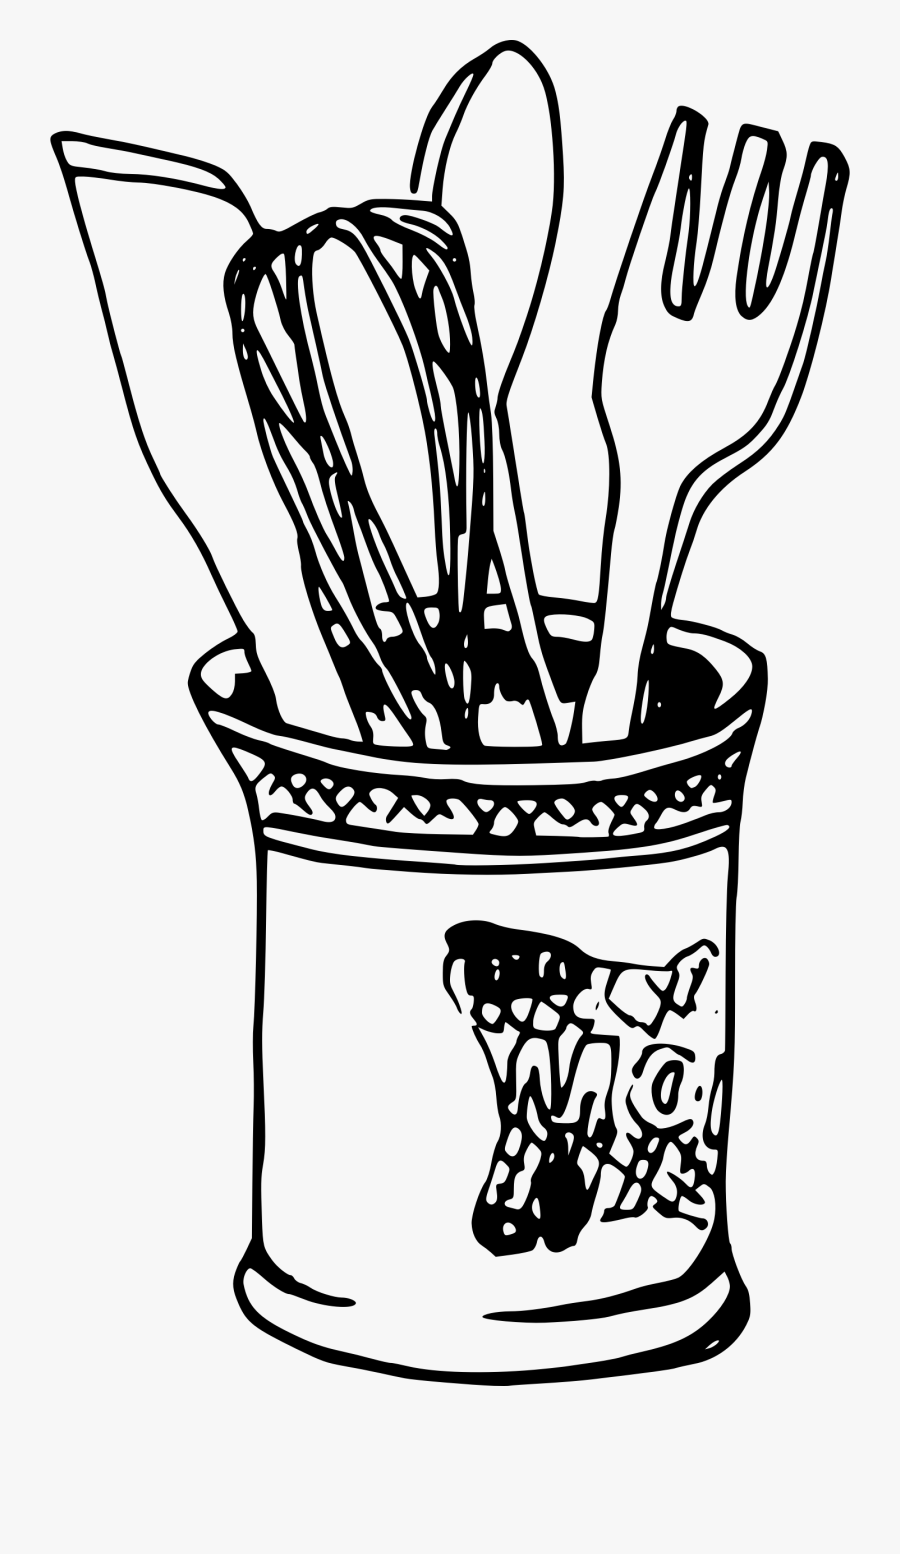 Knife And Fork Drawing At Getdrawings - Drawing Spoon And Fork Png, Transparent Clipart